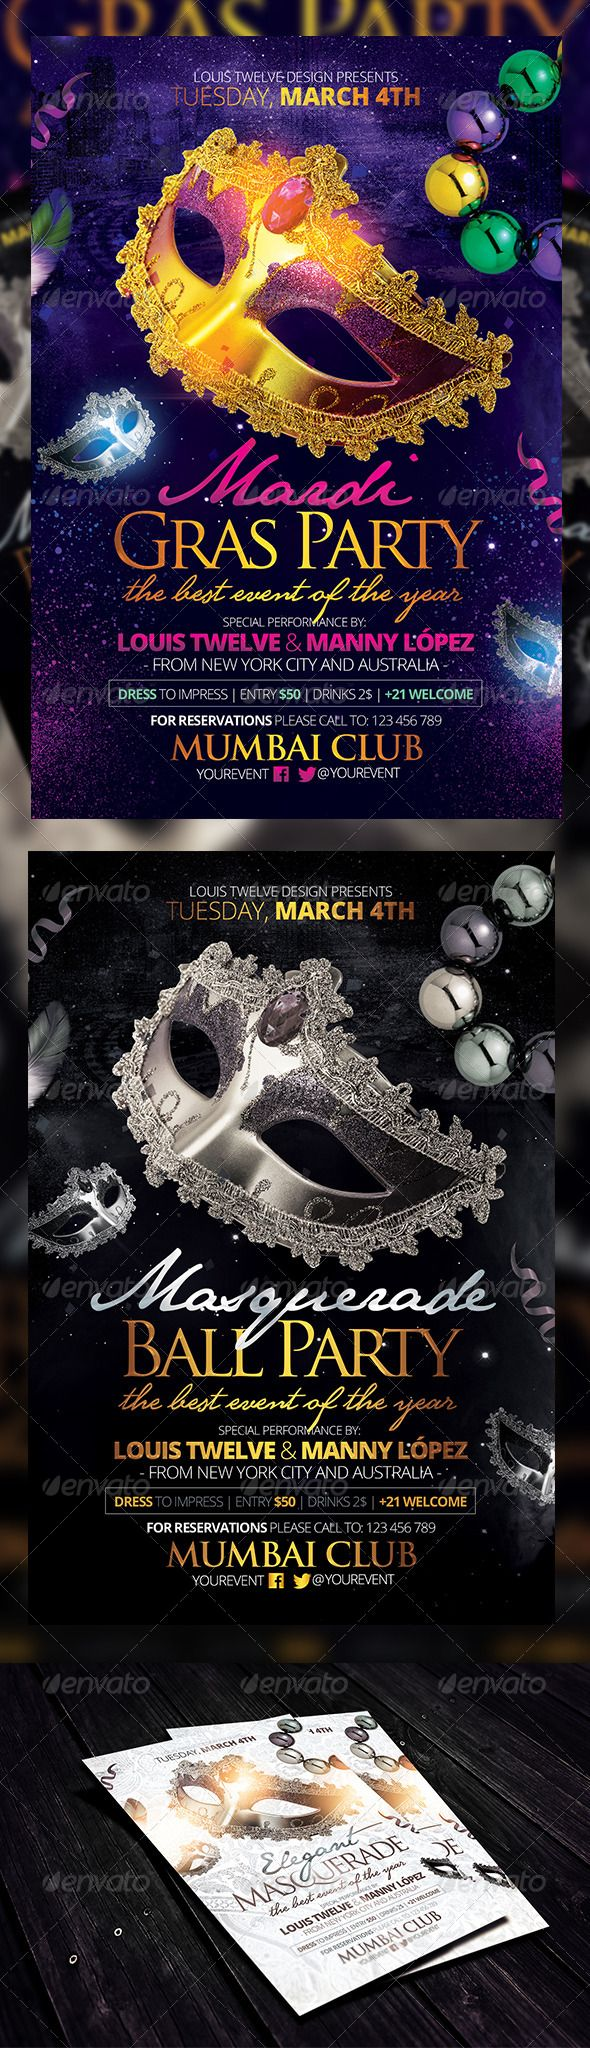 Masquerade Ball Mardi Gras Party Flyers Template – Ball Ticket Template